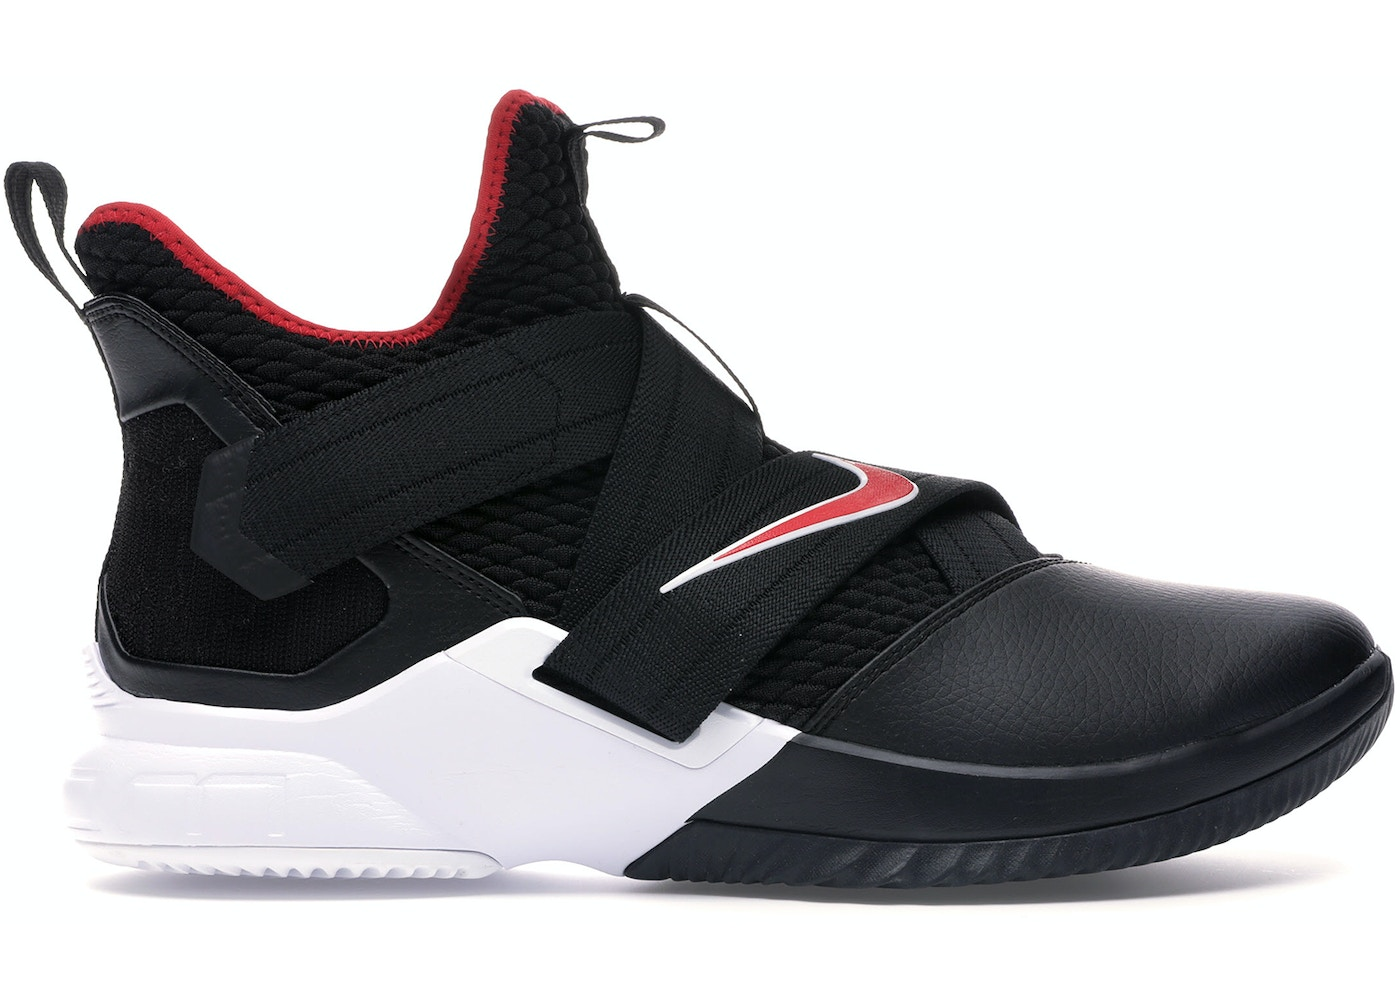 huge discount 7aa49 58a11 LeBron Zoom Soldier 12 Bred